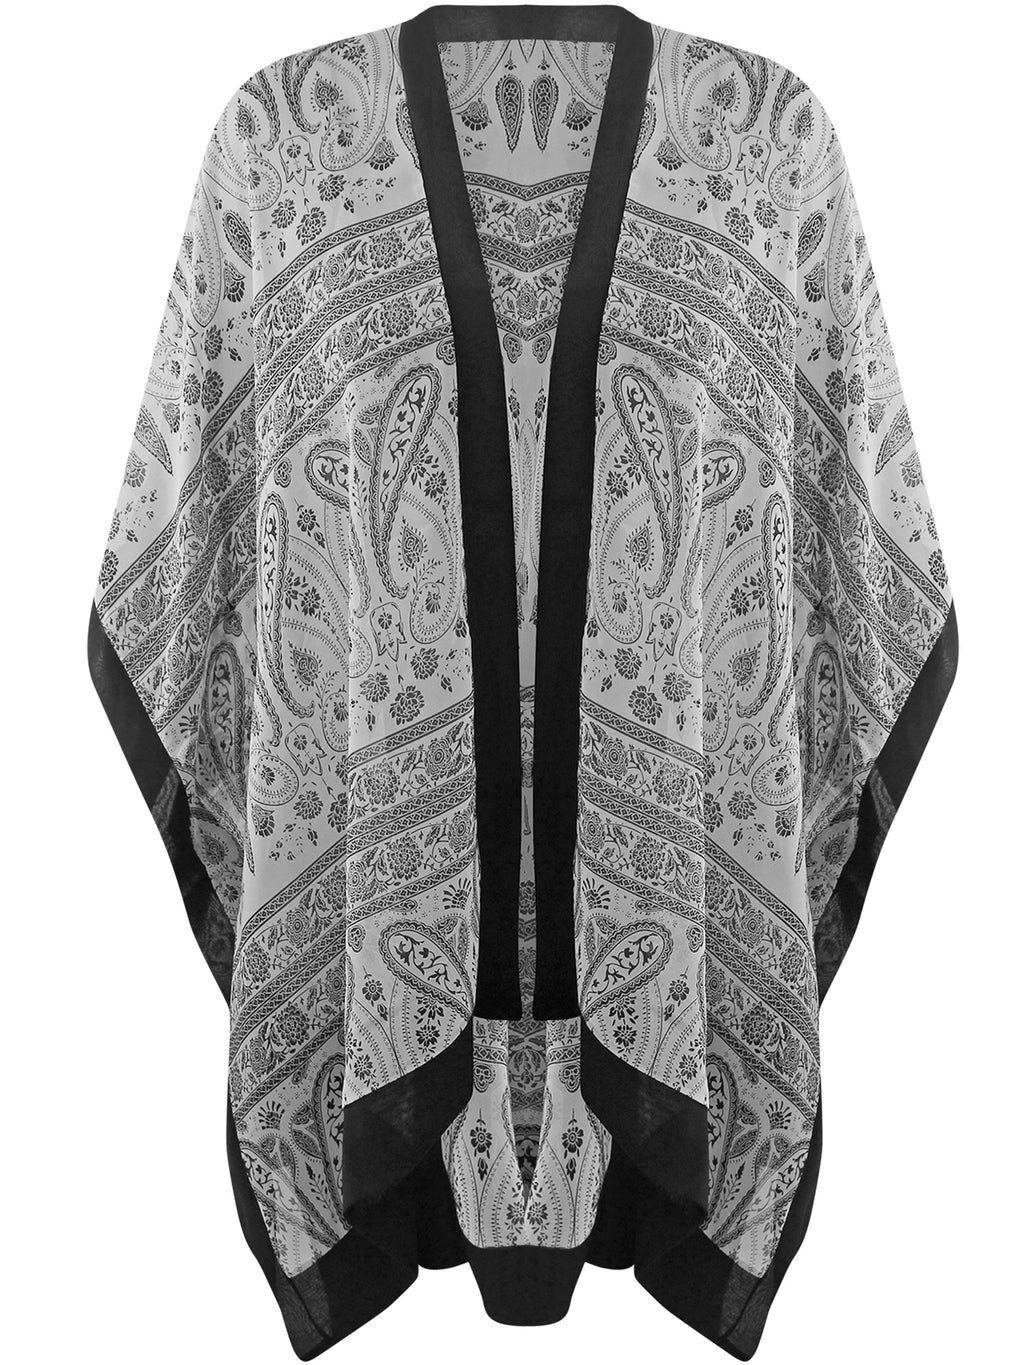 Black & White Sheer Chiffon Paisley Beach Cover Up